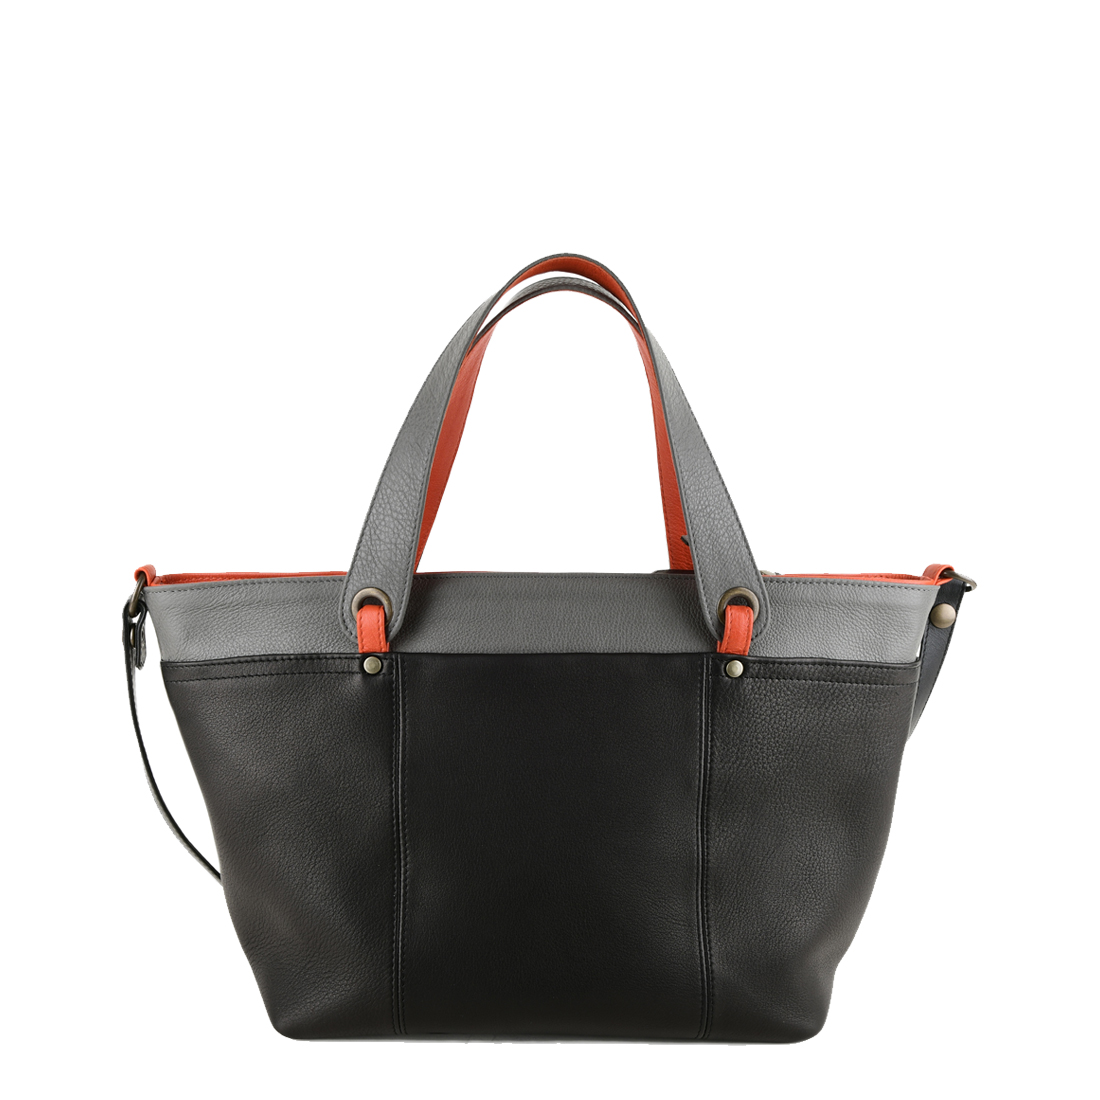 Lucy Black Orange Leather Tote Bag